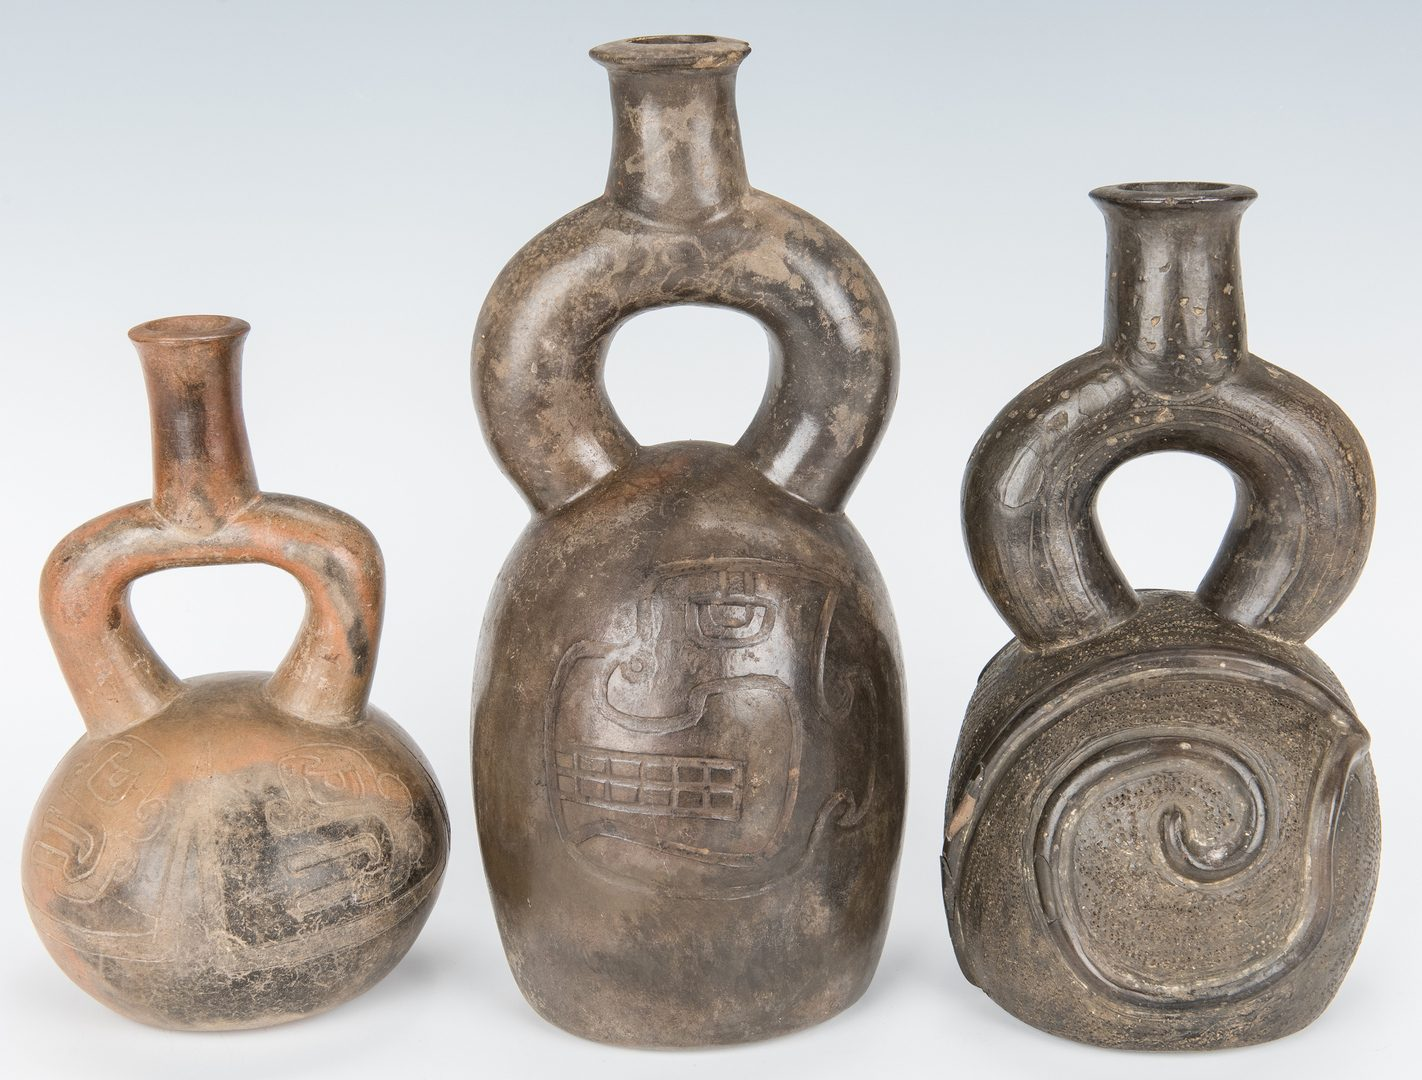 Lot 287: 3 Peruvian Chavin Stirrup Spout Pottery Vessels